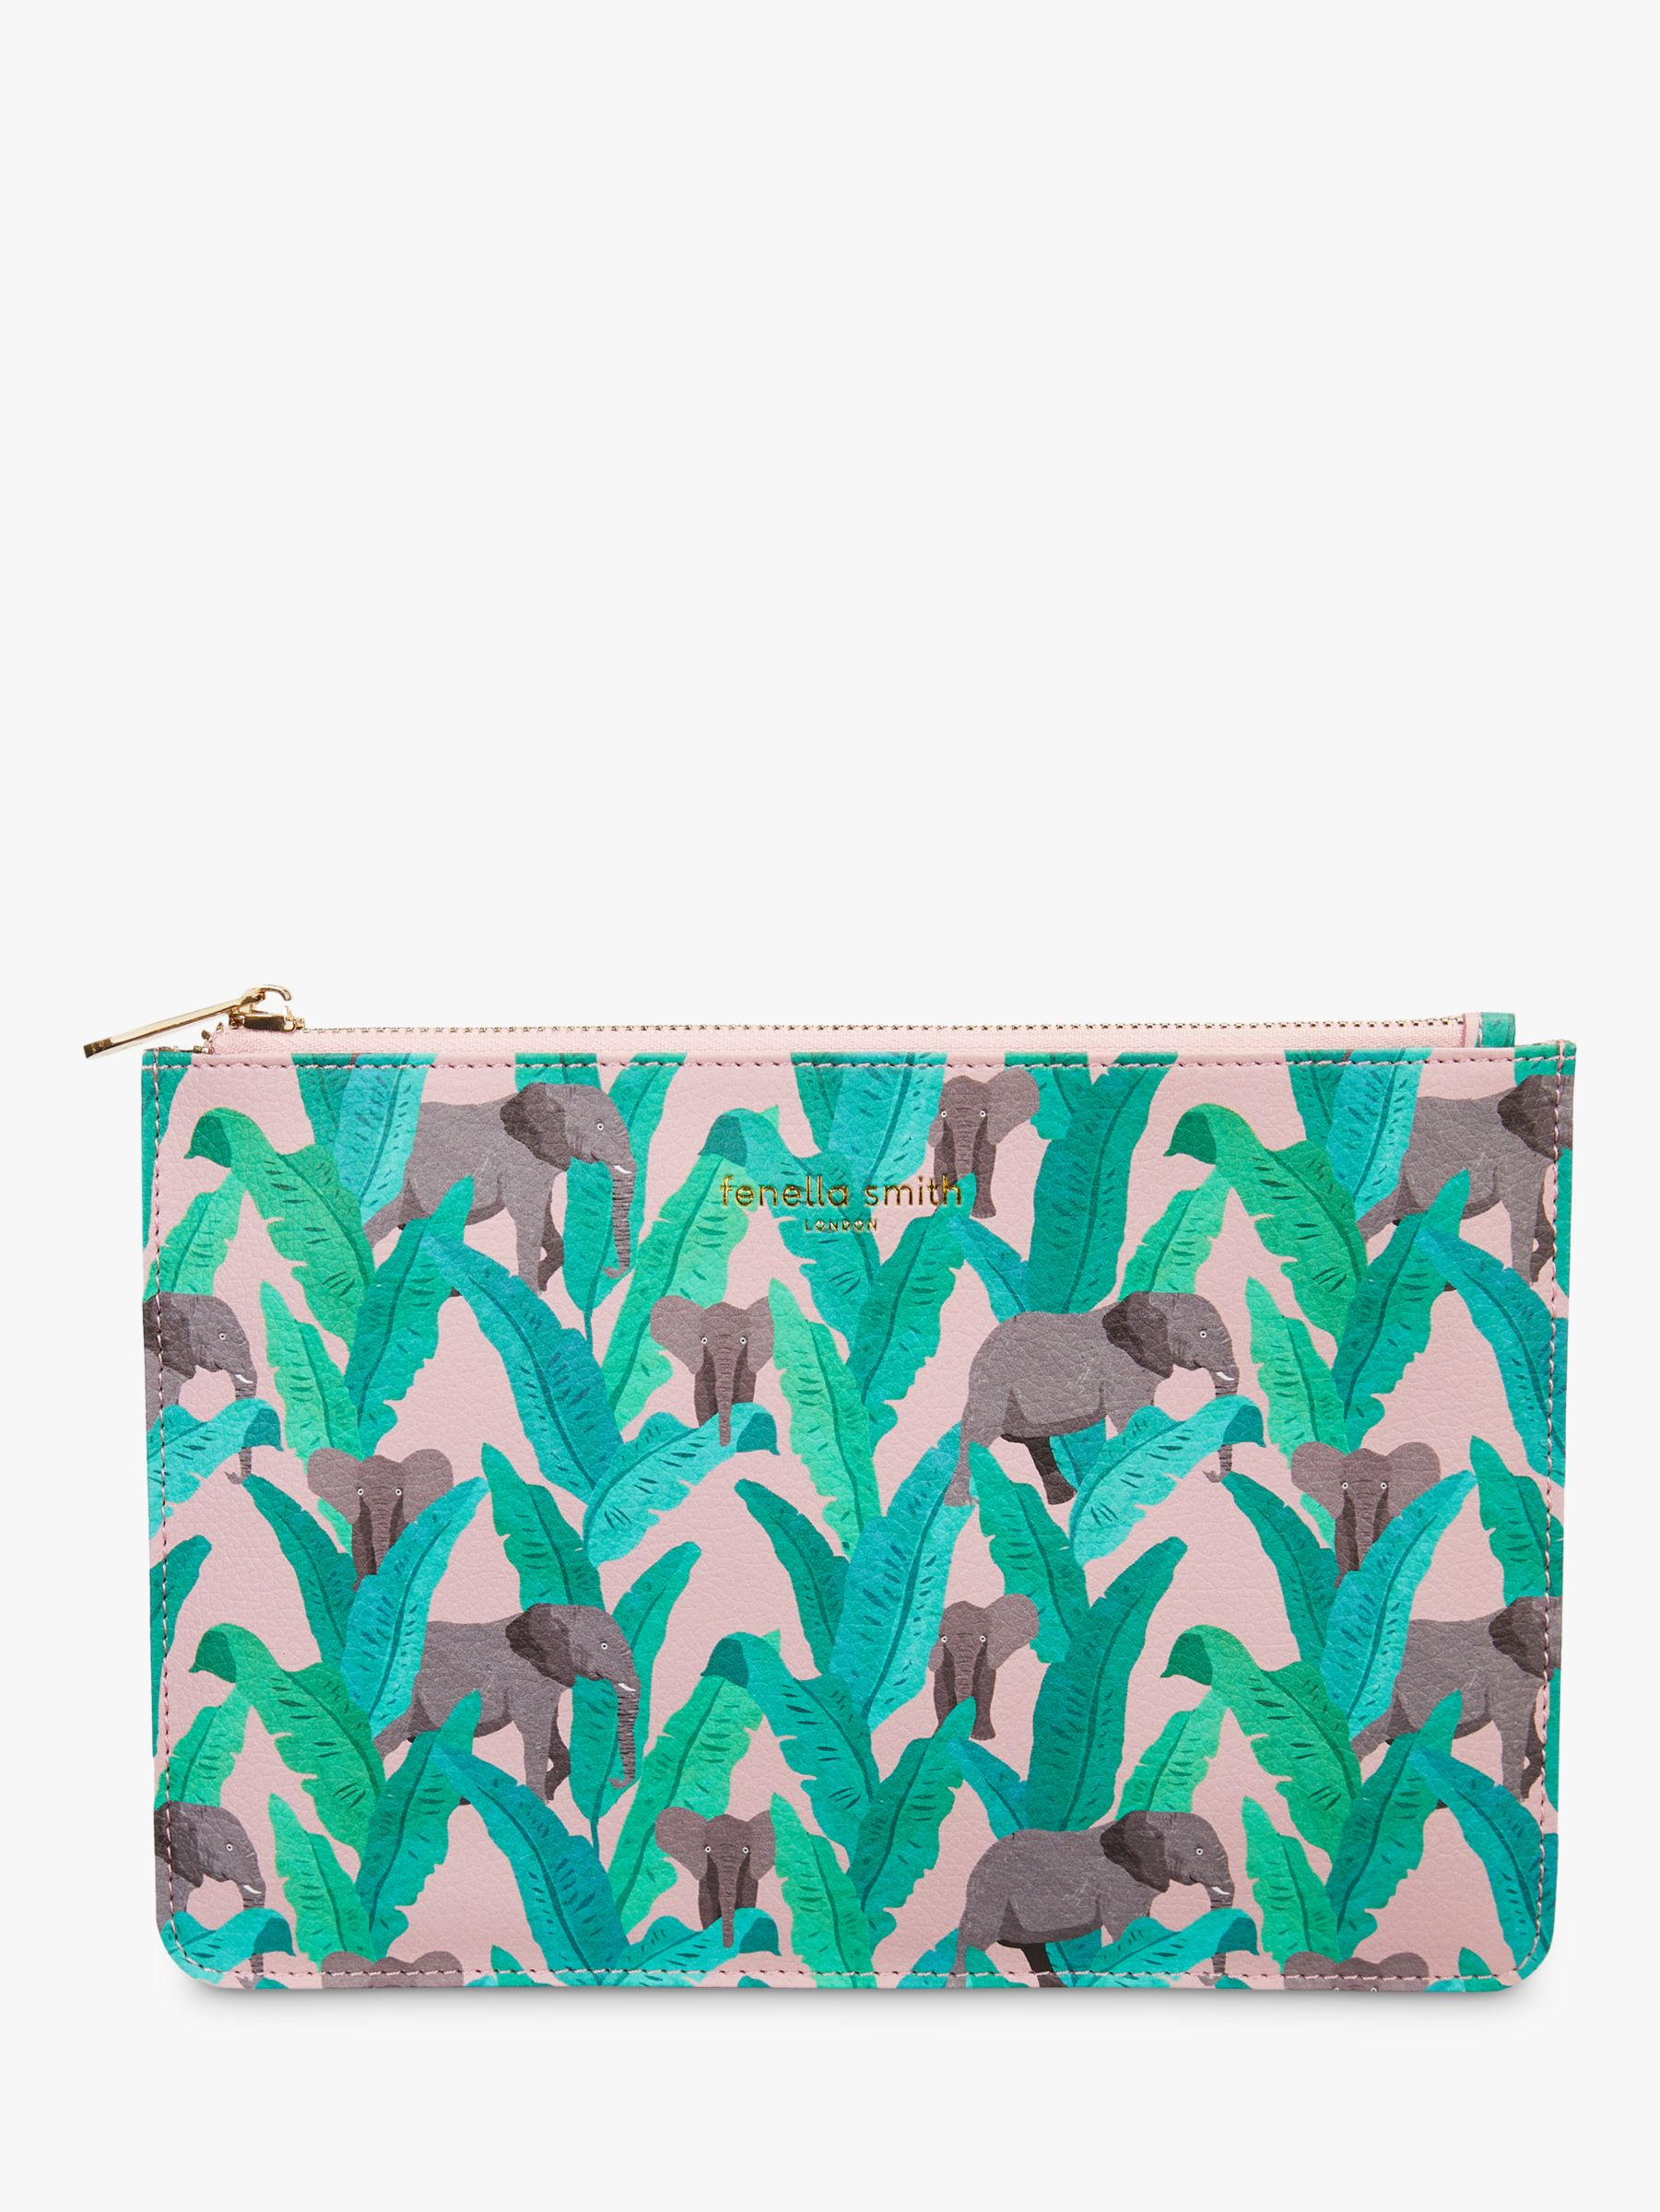 Fenella Smith Fenella Smith Elephant Clutch Bag